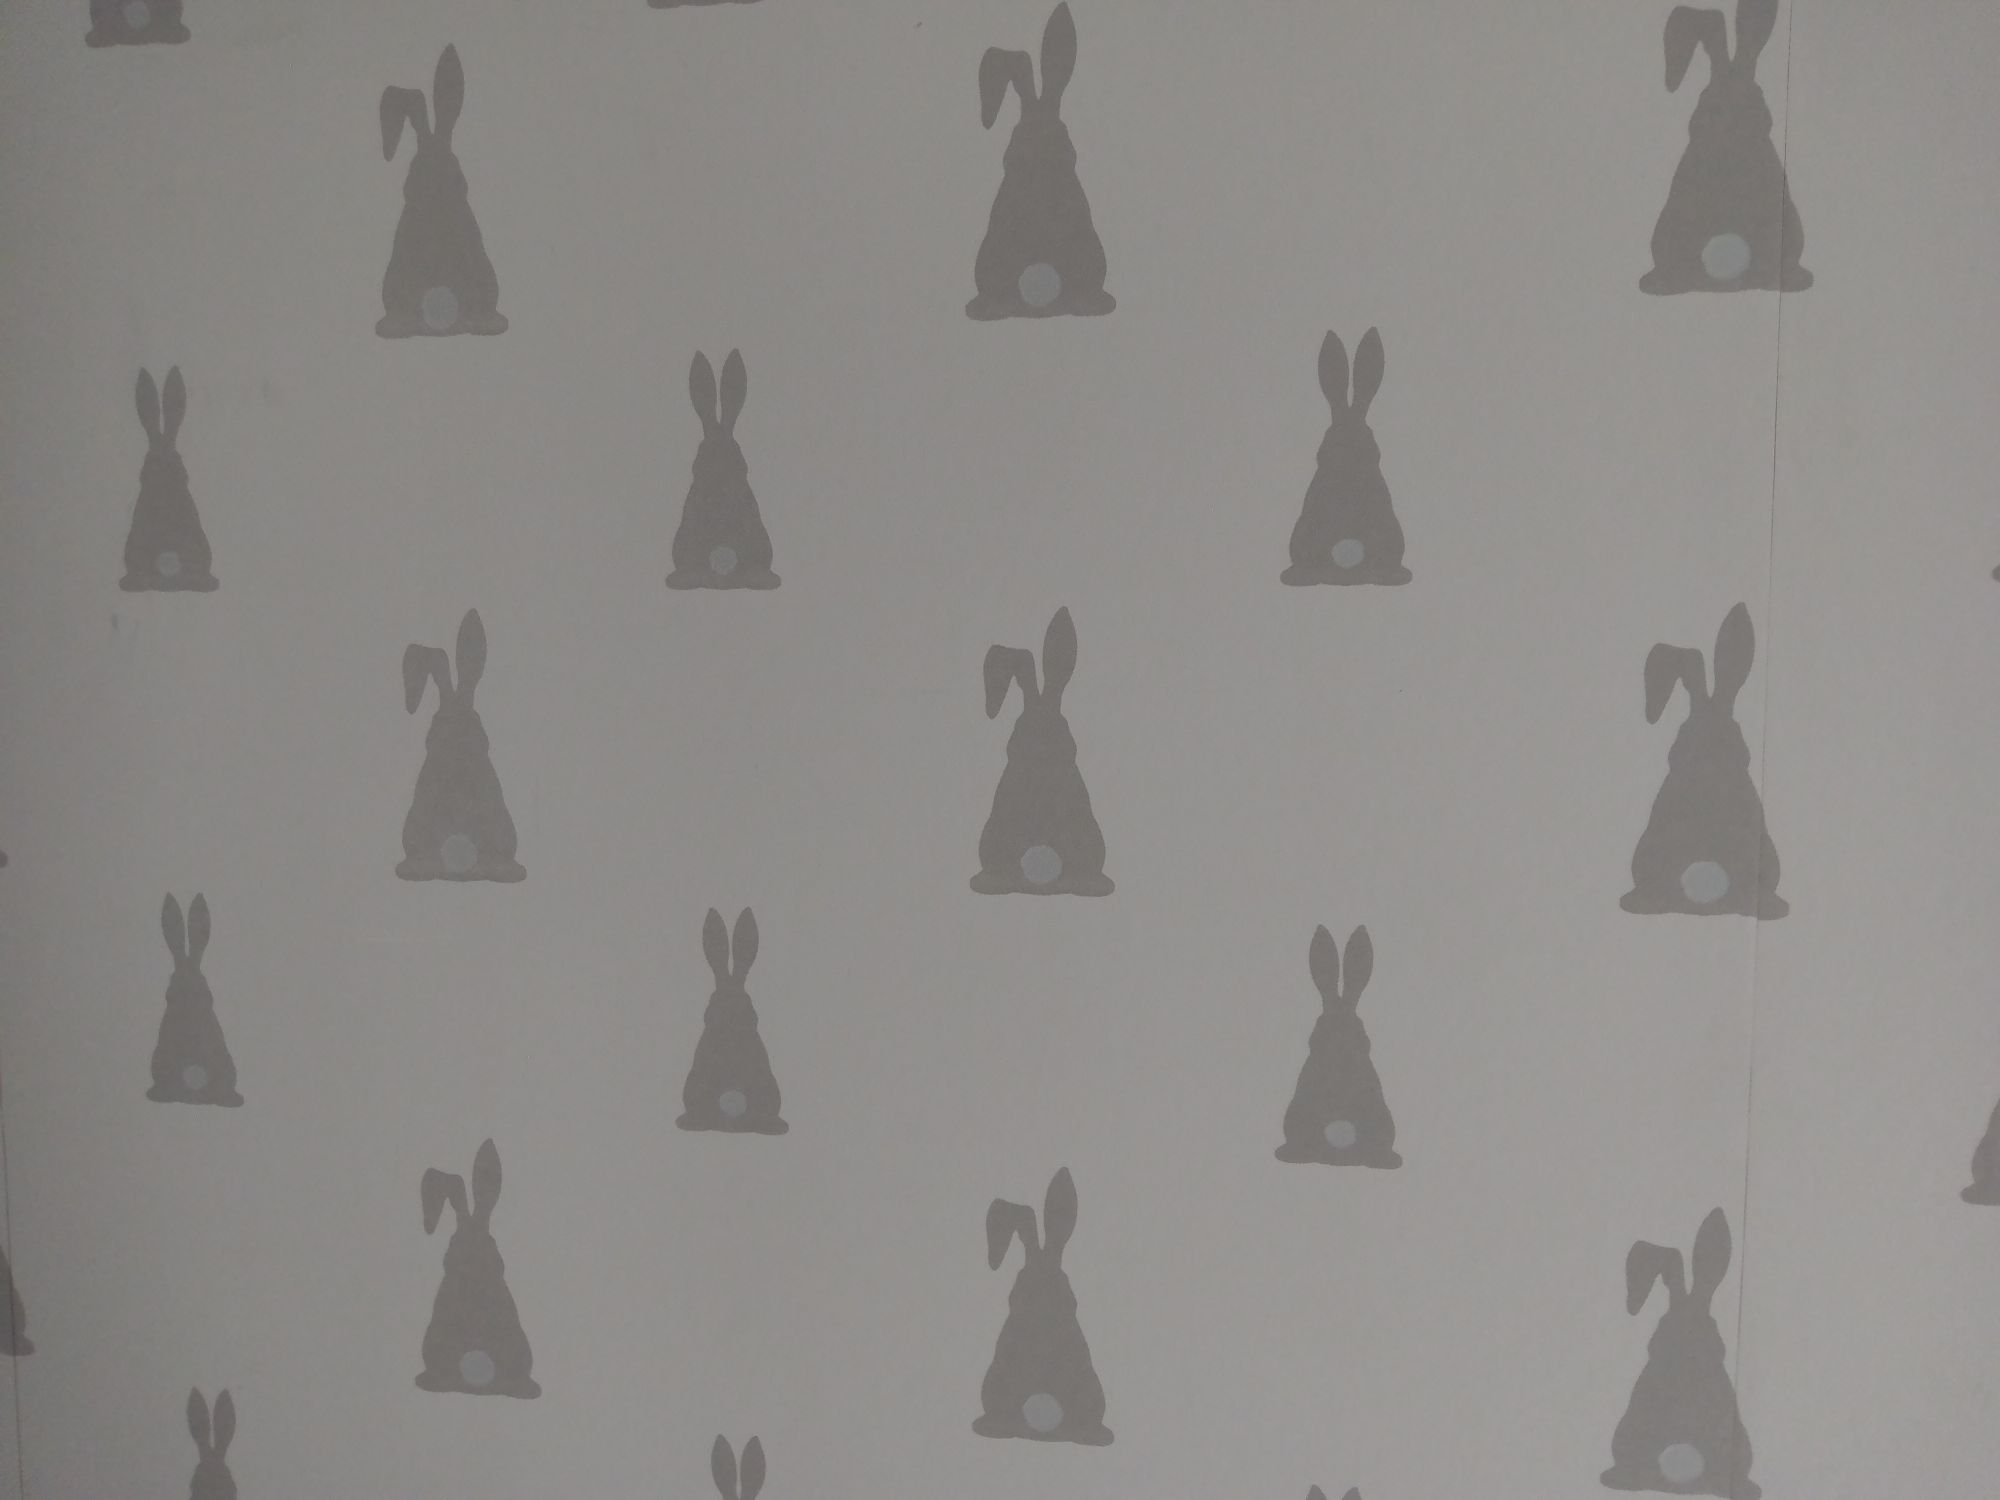 Inspiration: White wallpaper with grey rabbit silhouettes on it.